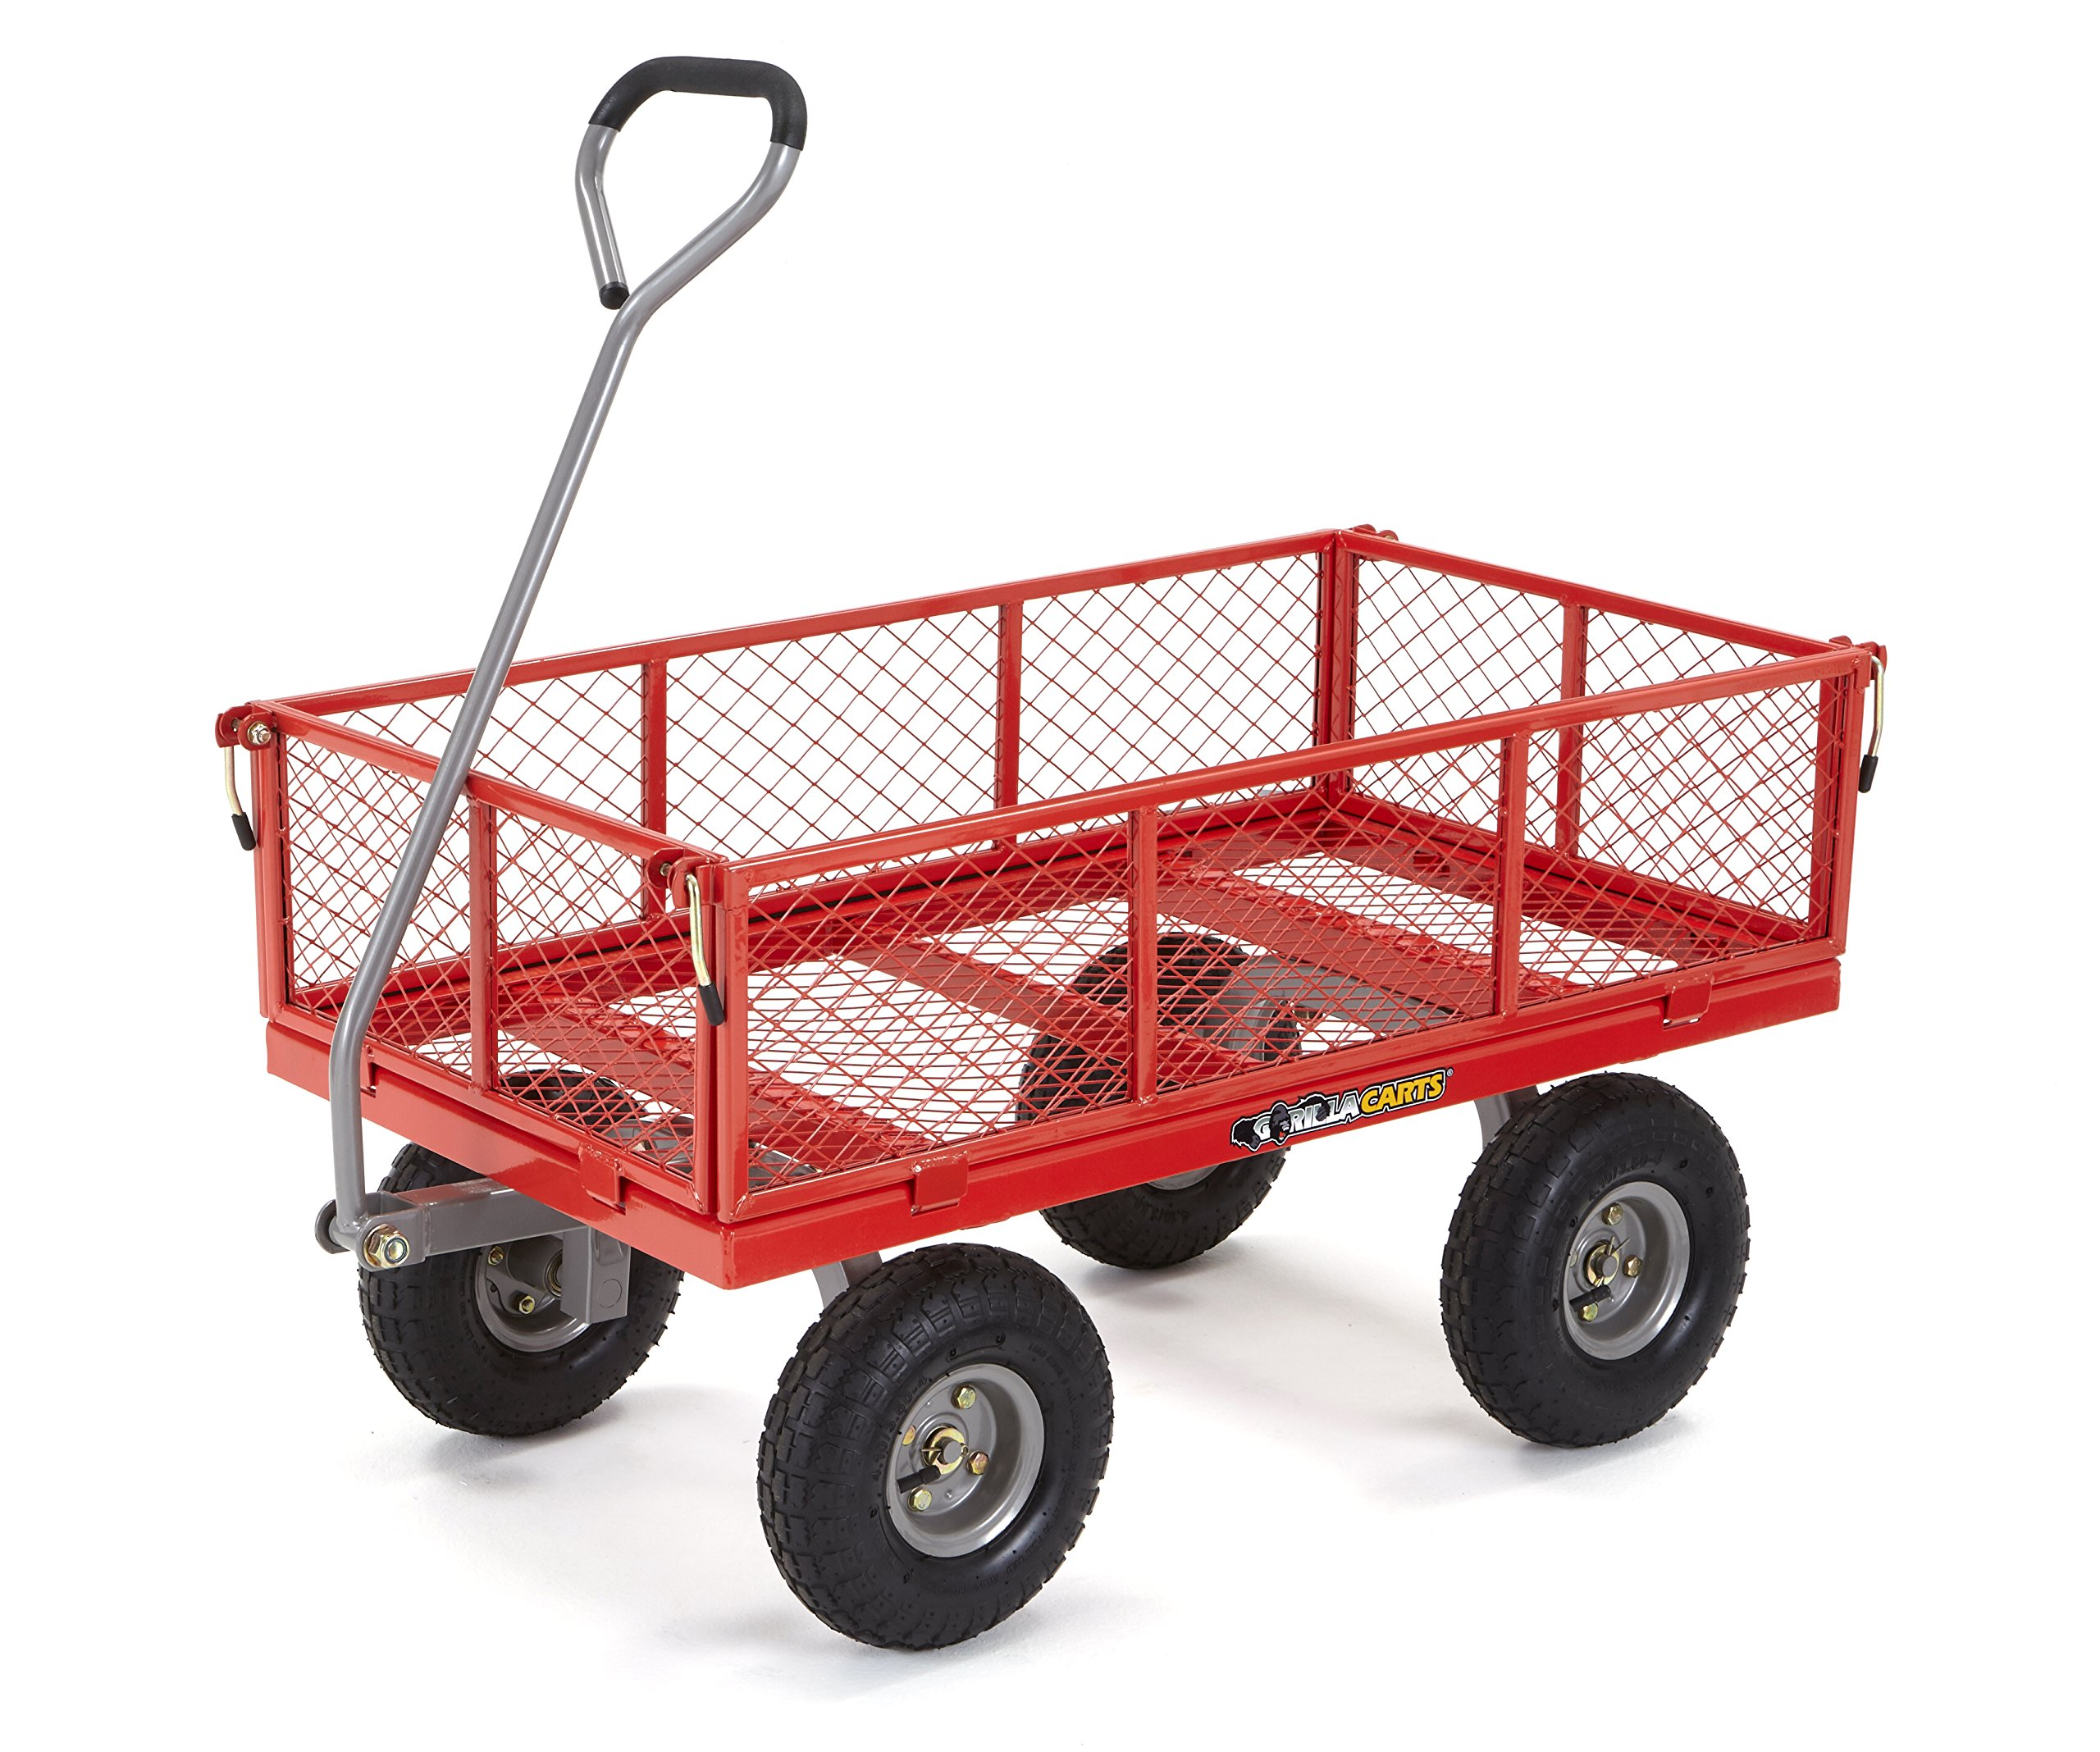 Gorilla Carts GOR800-COM Steel Utility Cart with Removable Sides, 800-lbs. Capacity, Red by Gorilla Carts